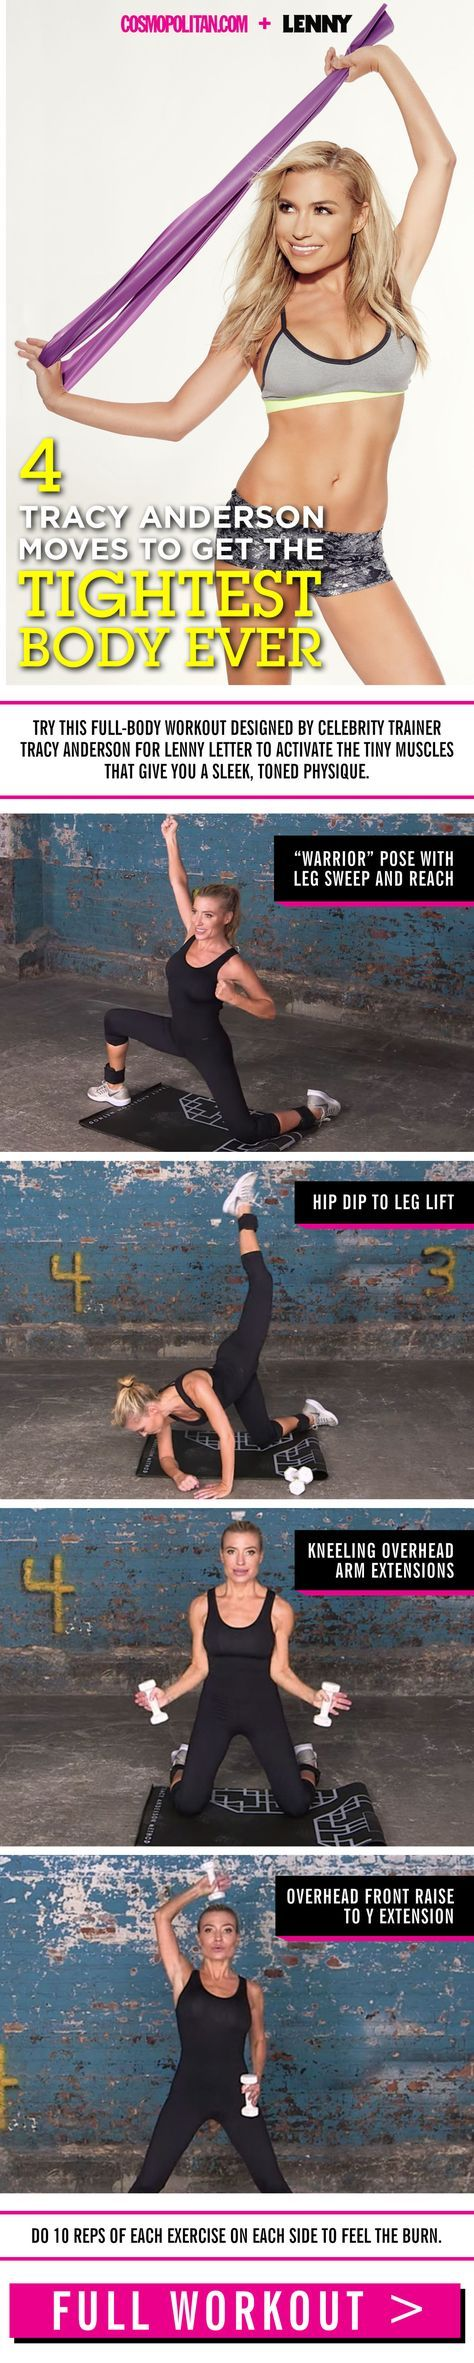 TRACY ANDERSON WORKOUT: Celebs like Jennifer Lawrence, Kim Kardashian, and Taylor Swift swear by her workouts, so if you want to train like an a-lister, here's what you've got to do! Use these four moves — warrior pose, hip dip to leg lift, kneeling overhead arm extensions, and overhead front raise — to tone up! Click through for the full, free workout!